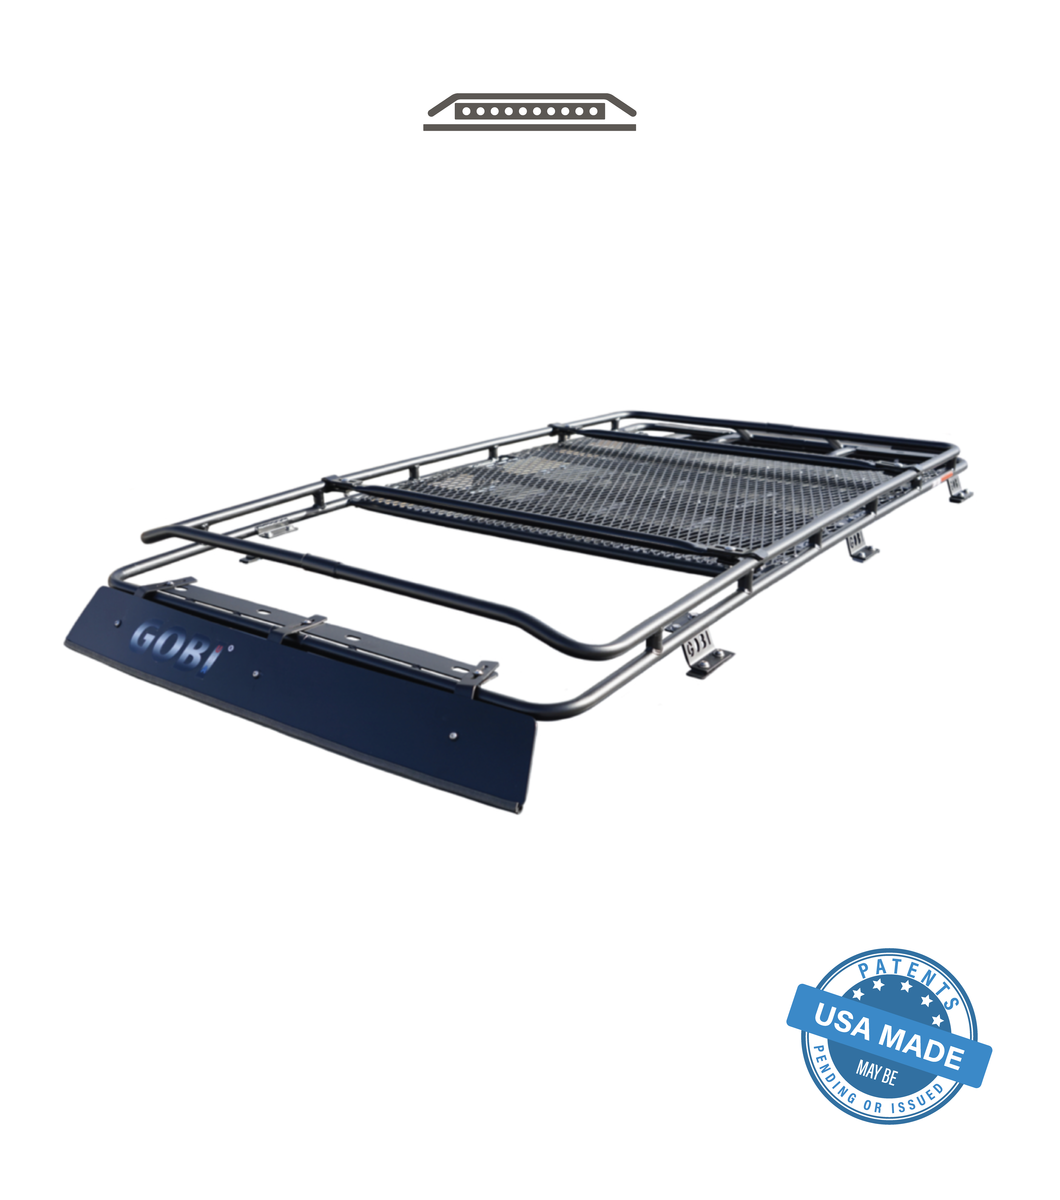 GOBI 4th Gen 4Runner Stealth Rack; Lightbar Setup; WITH SUNROOF 2003-2009